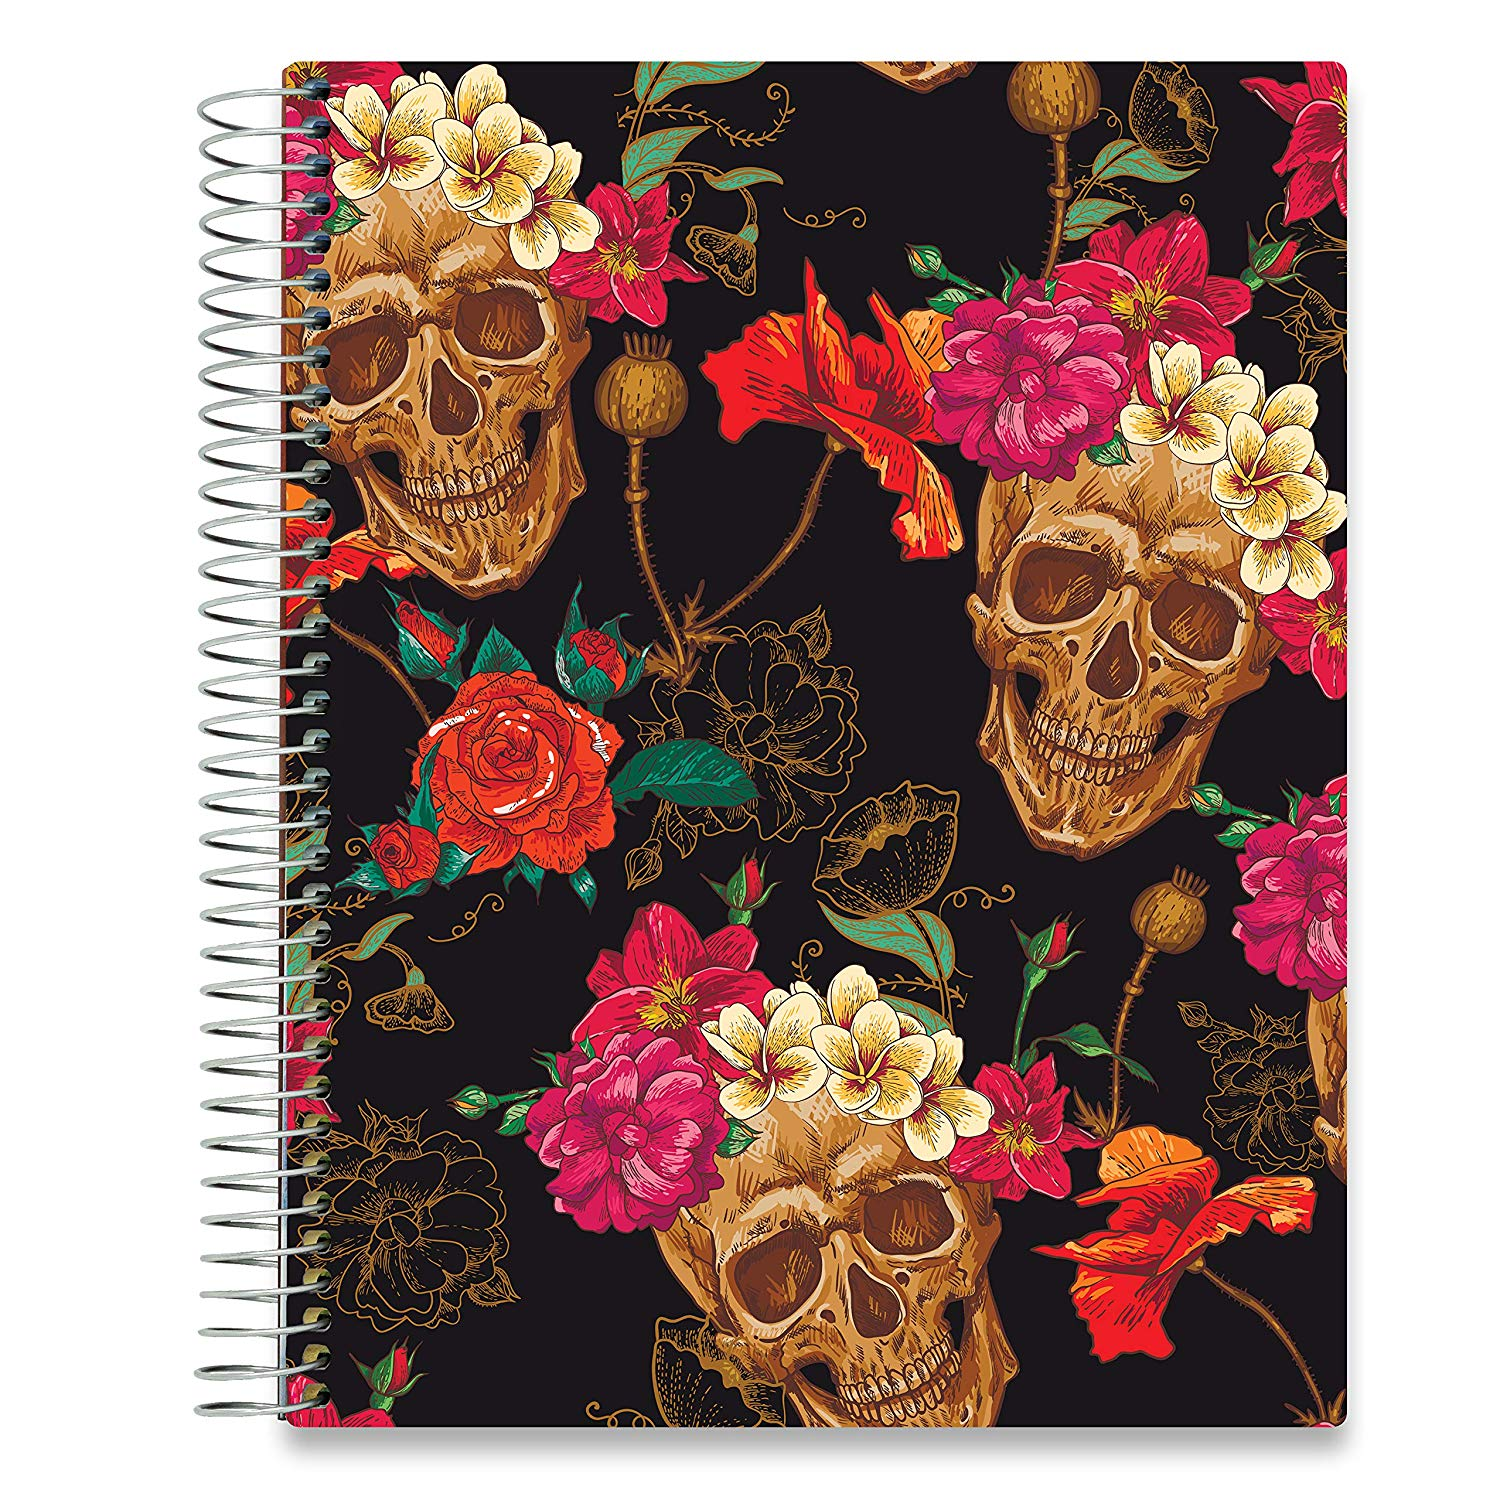 NEW: April 2020-2021 Planner - 8.5x11 - Sugar Skulls-Office Product-Tools4Wisdom